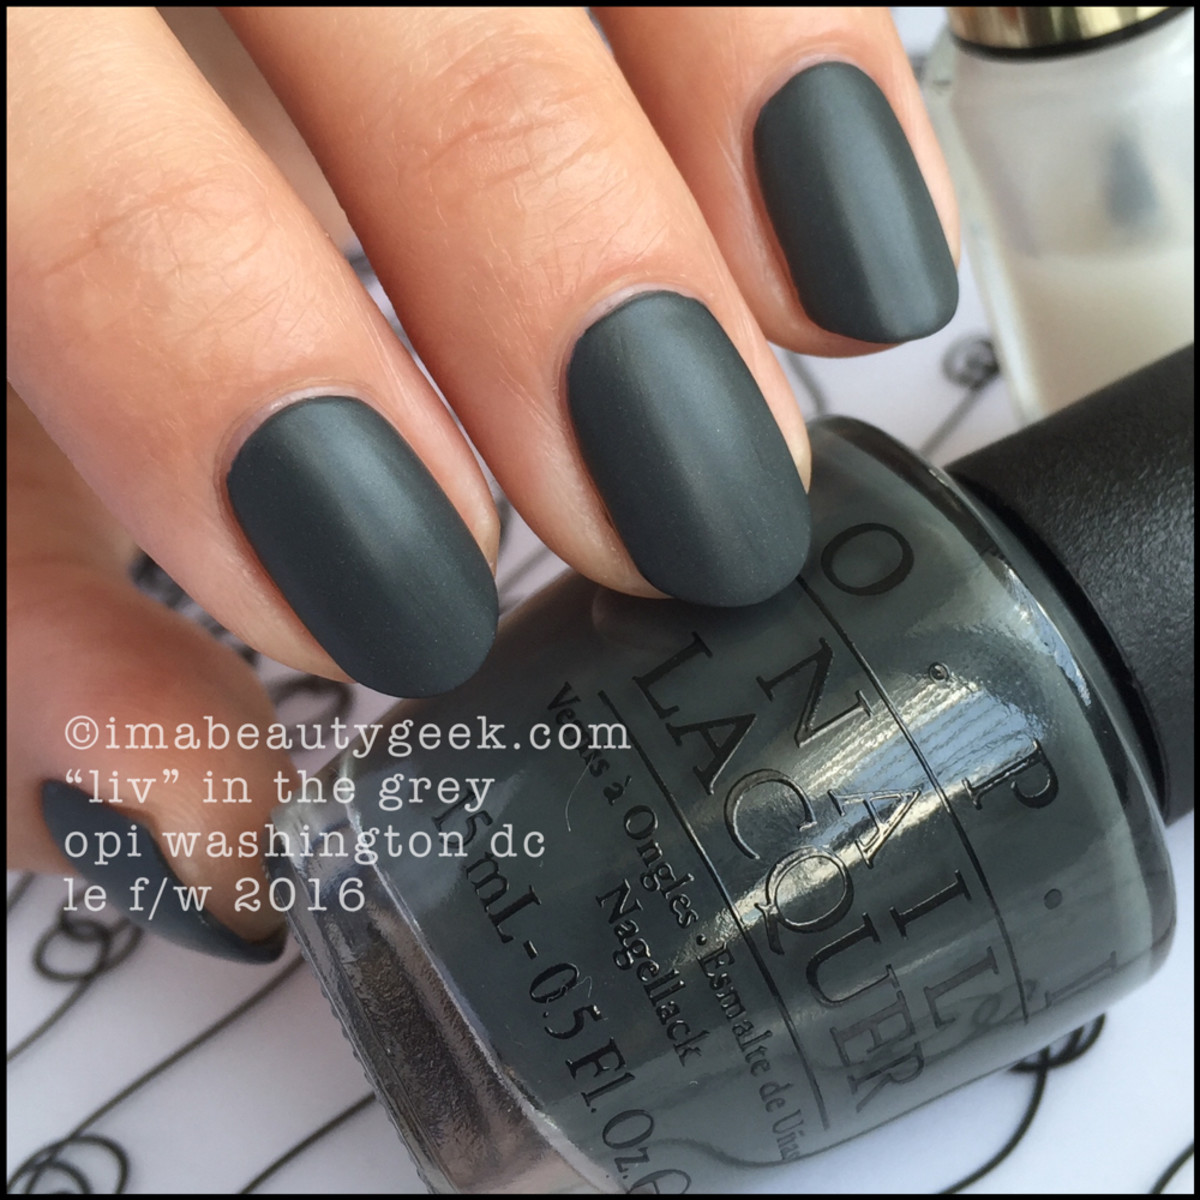 OPI Liv in the Grey_OPI Washington DC Collection 2016 Swatches Review